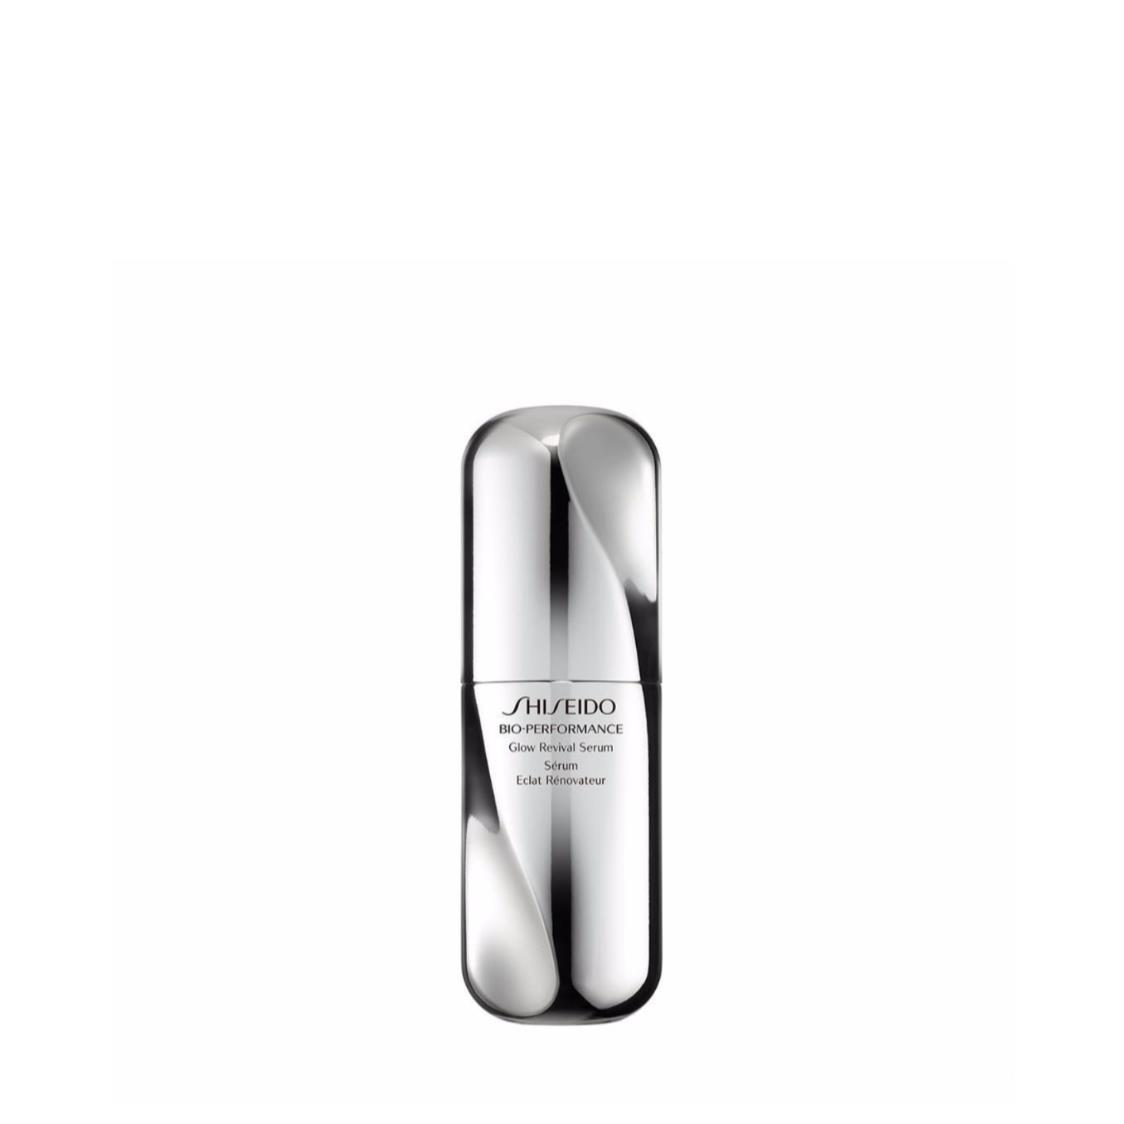 Shiseido Bio-Performance Glow Revival Serum 50ml